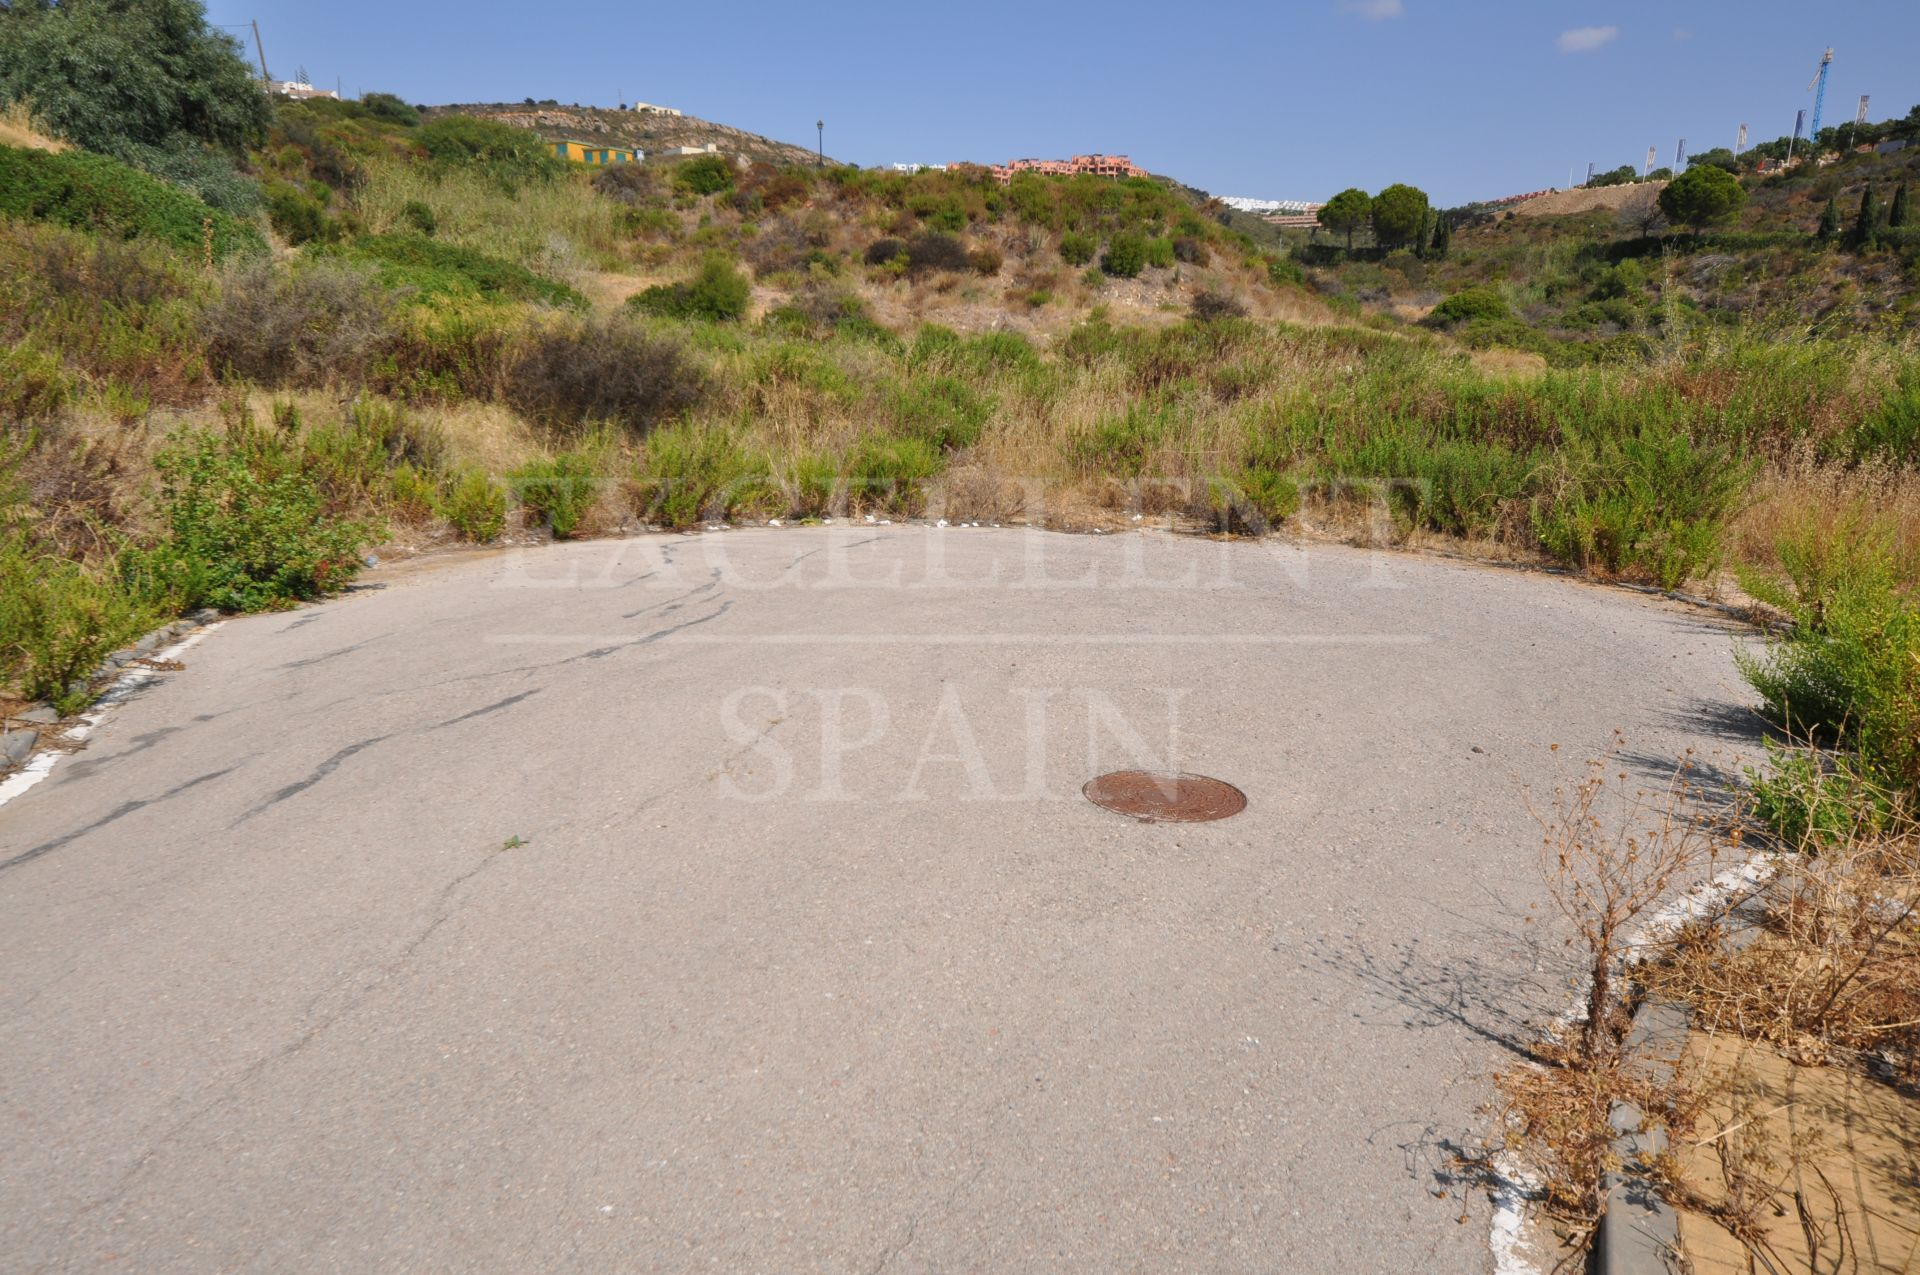 Investment, Building plot for sale for 11 individual villas in Manilva, Costa del Sol